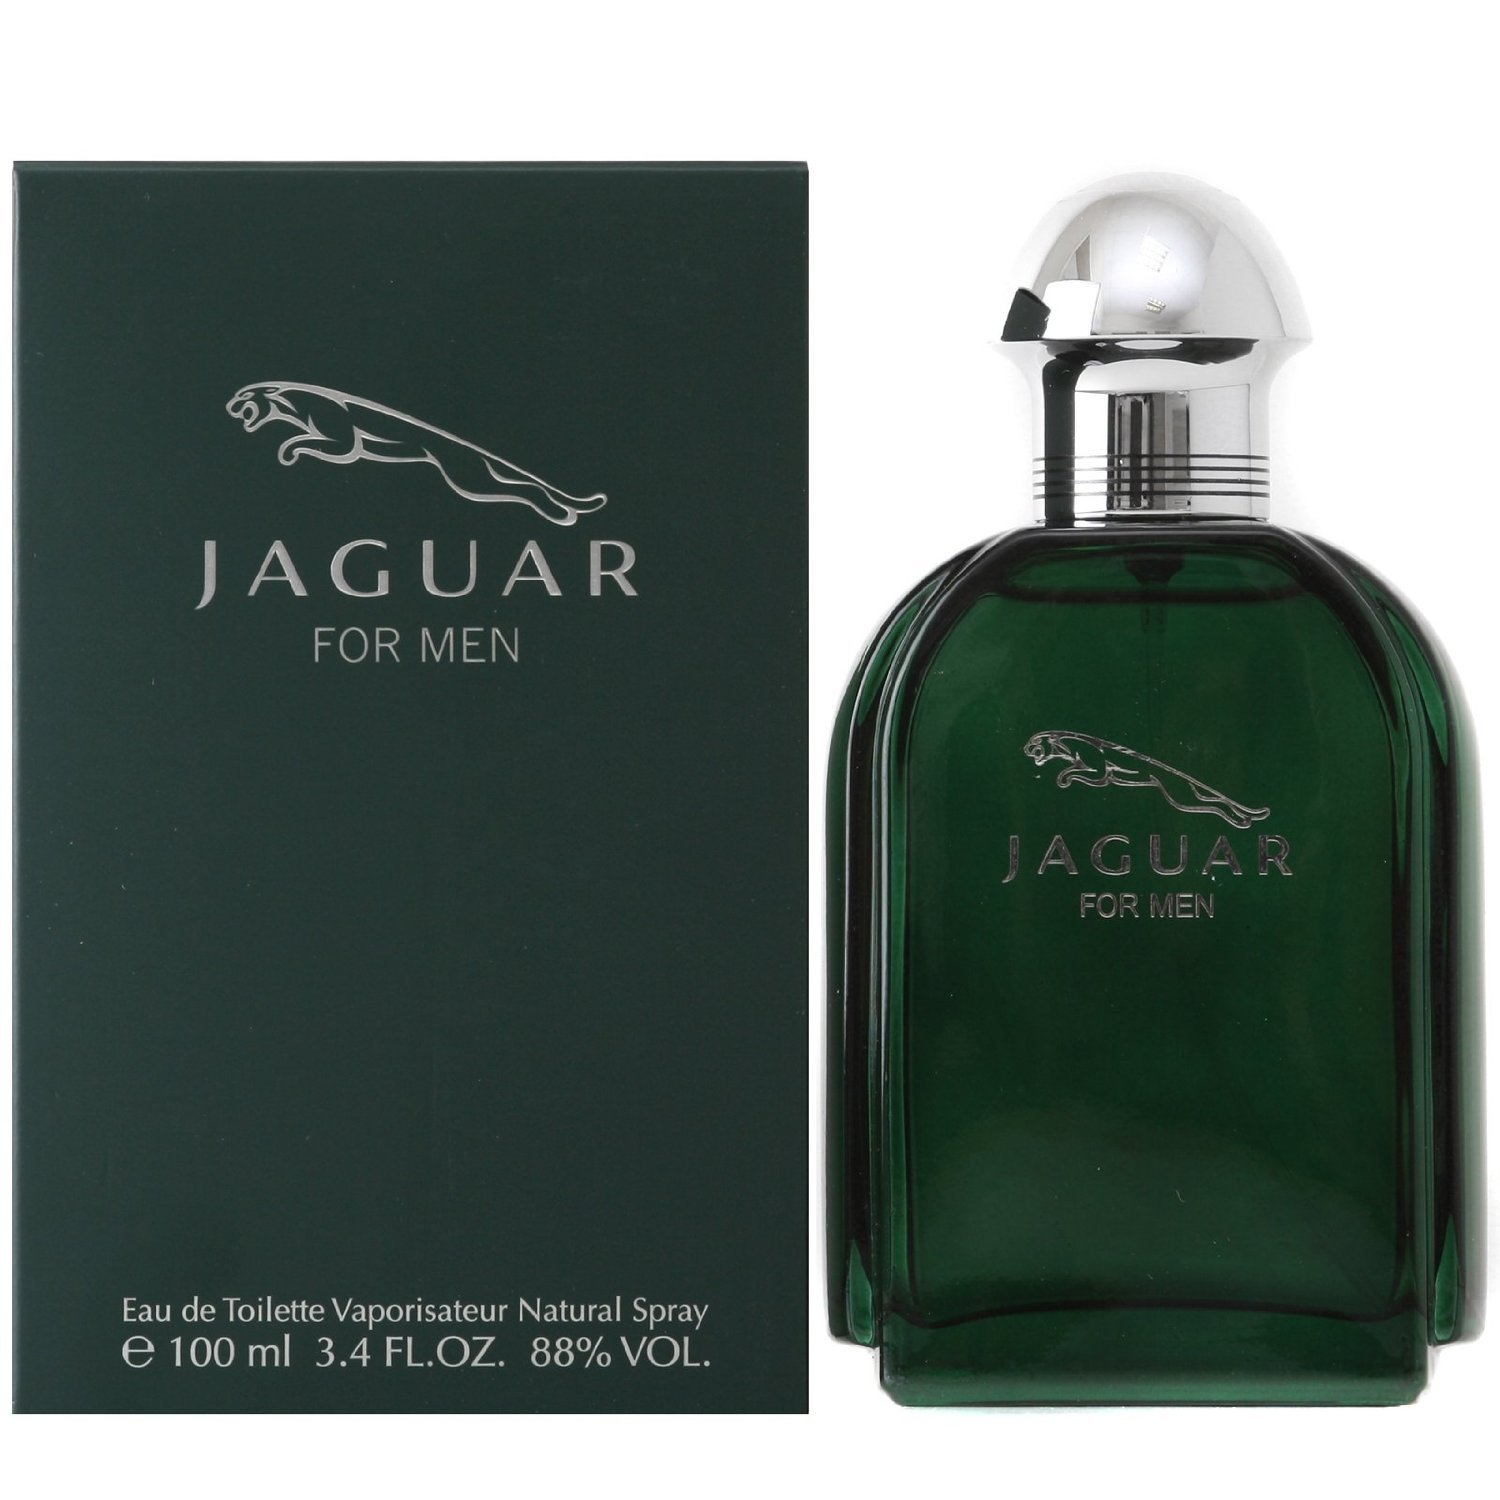 jaguar prestige men eau de toilette spray by. Black Bedroom Furniture Sets. Home Design Ideas